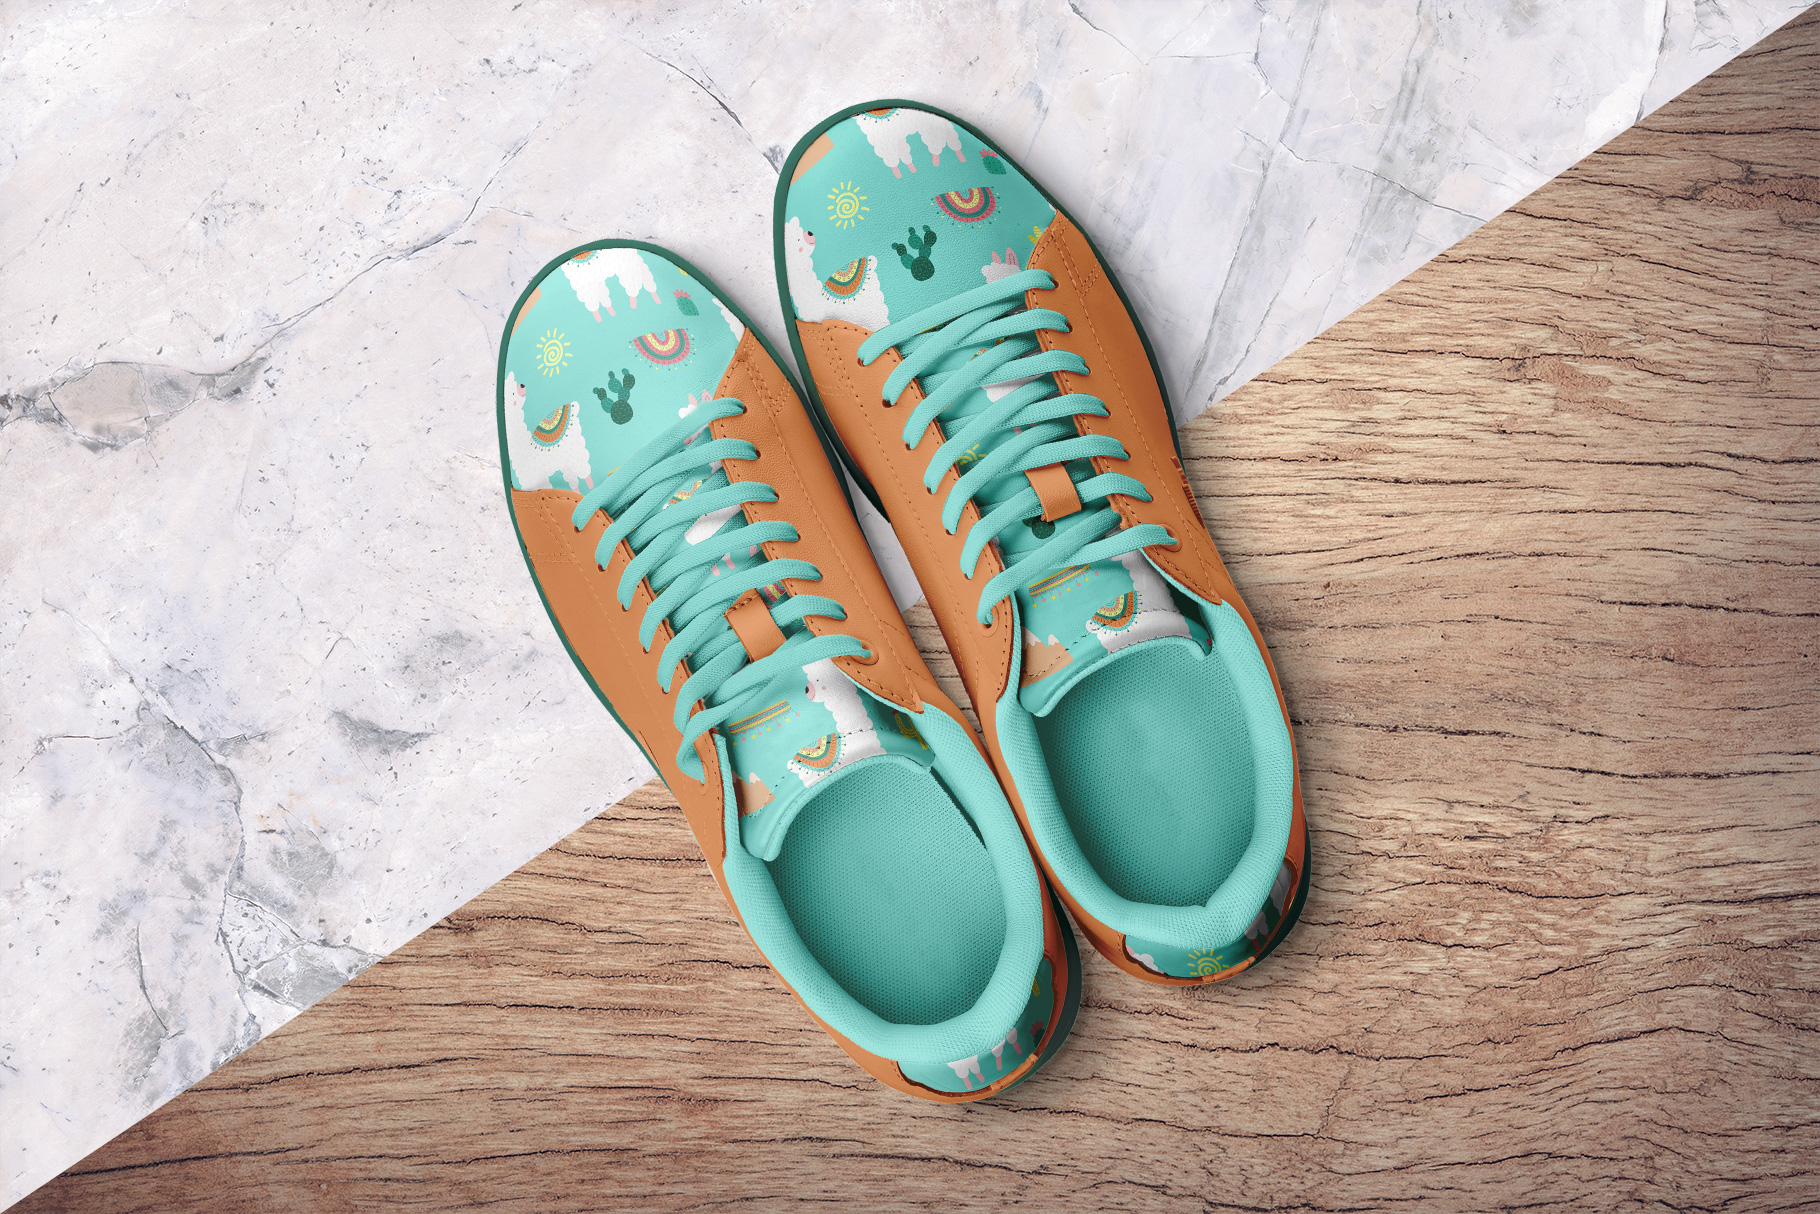 background options of the top view trendy sneakers mockup